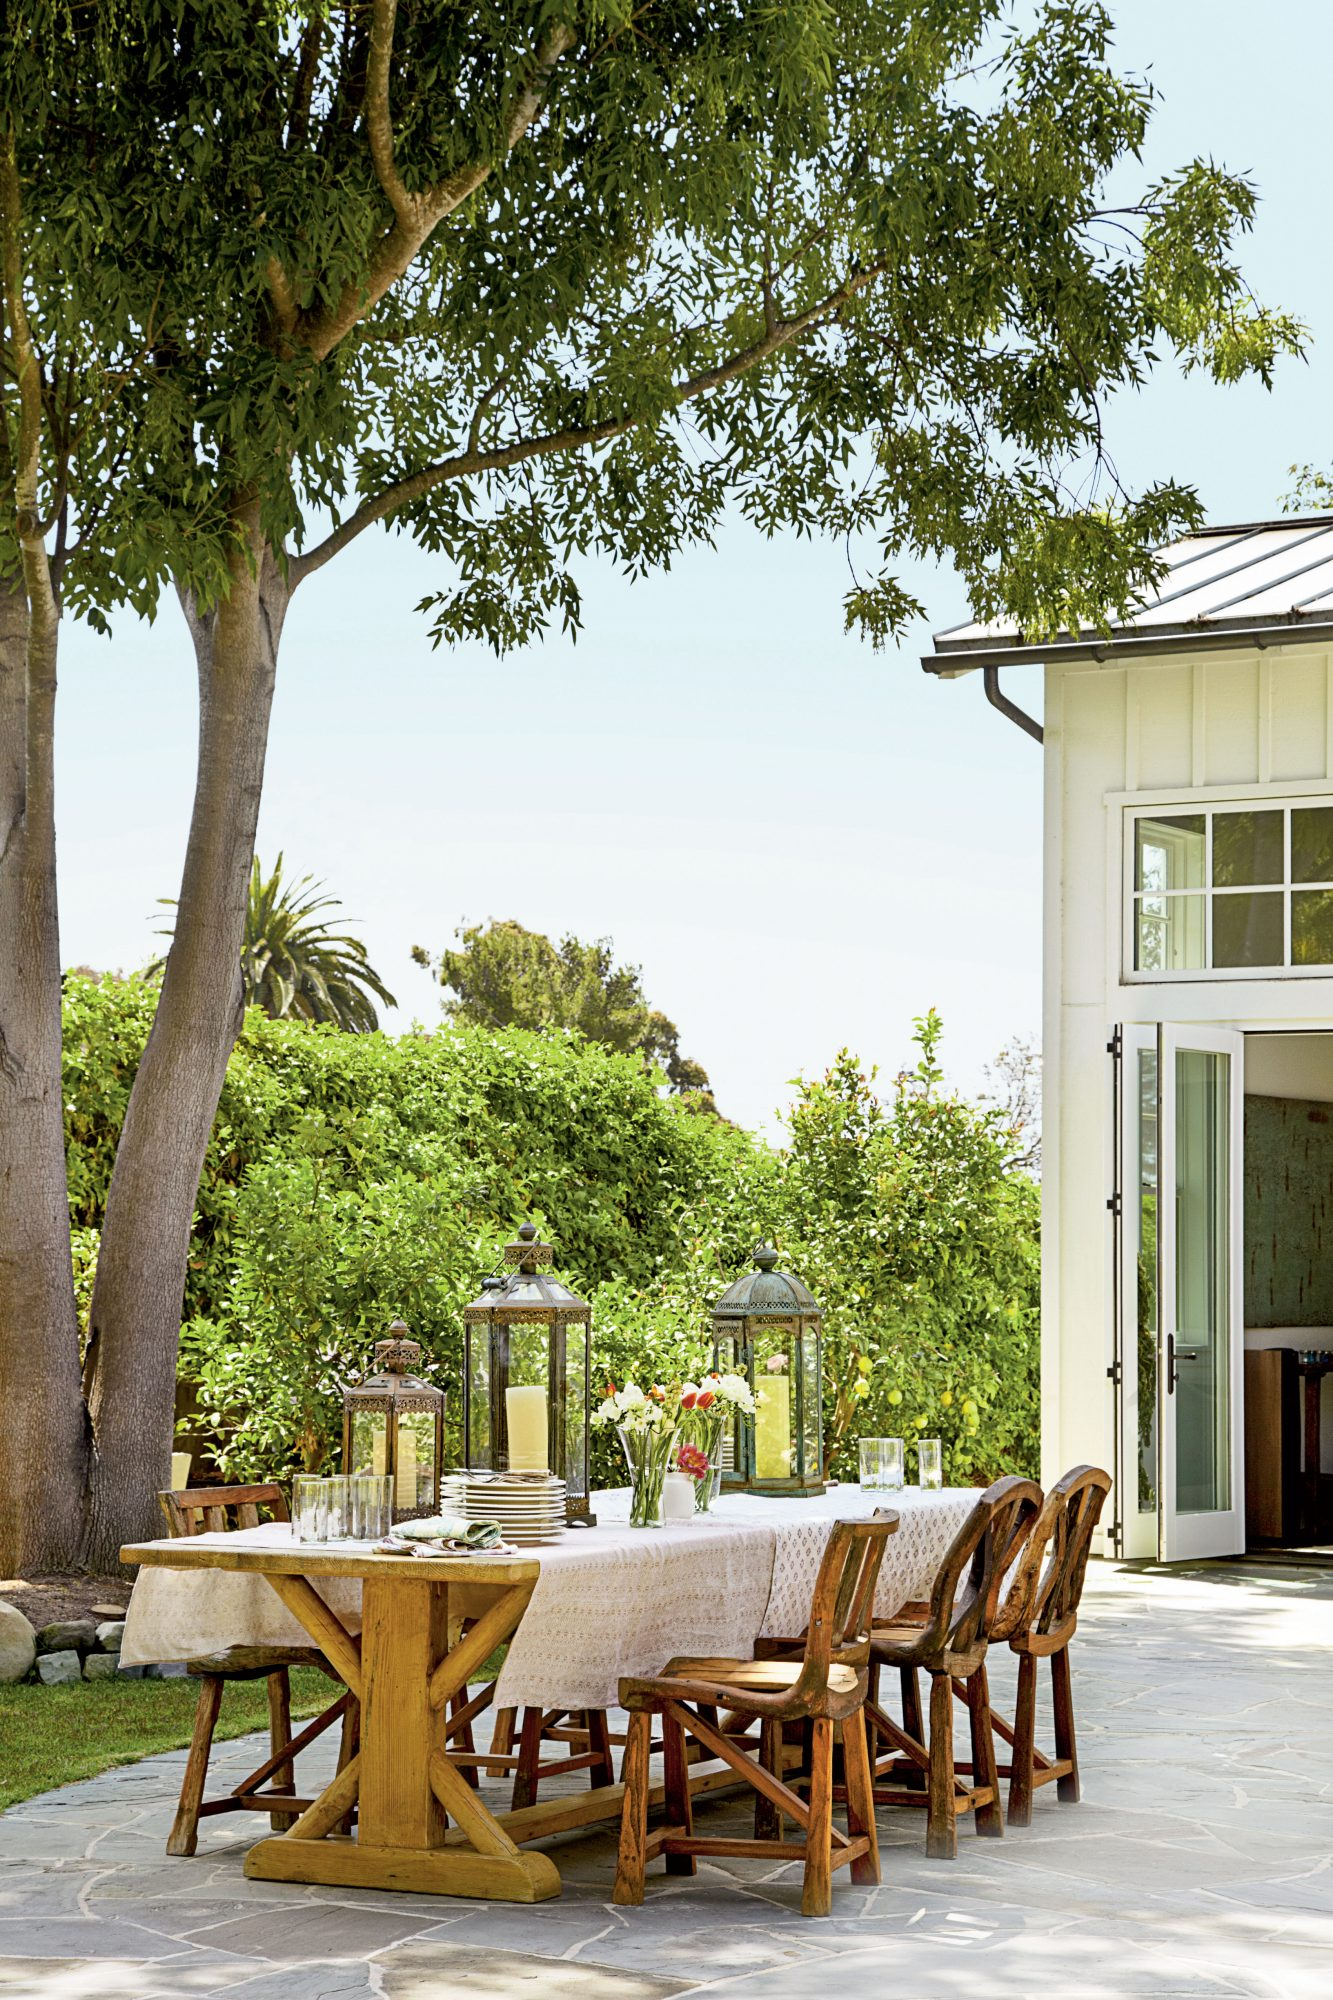 Teak furnishings and Moroccan-style lanterns make this Malibu patio perfect for dining al fresco.